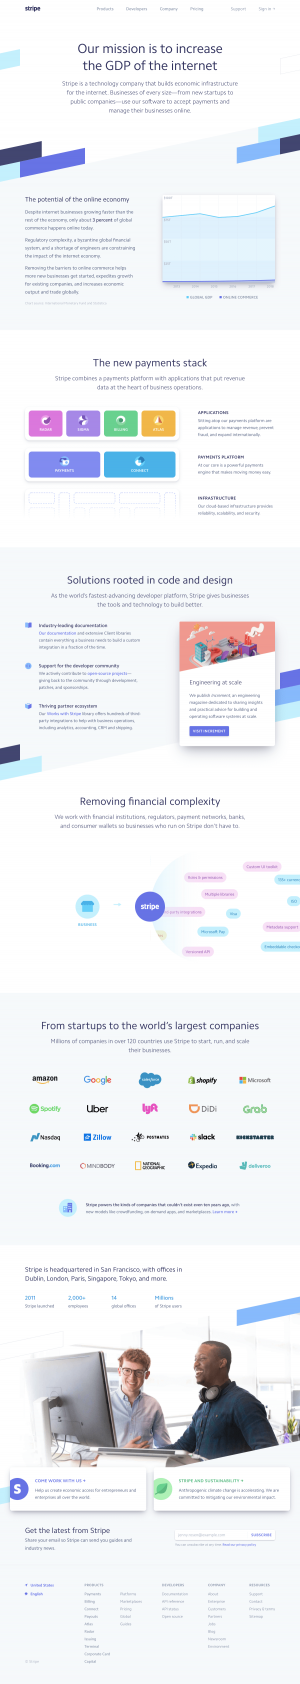 Stripe - About us page